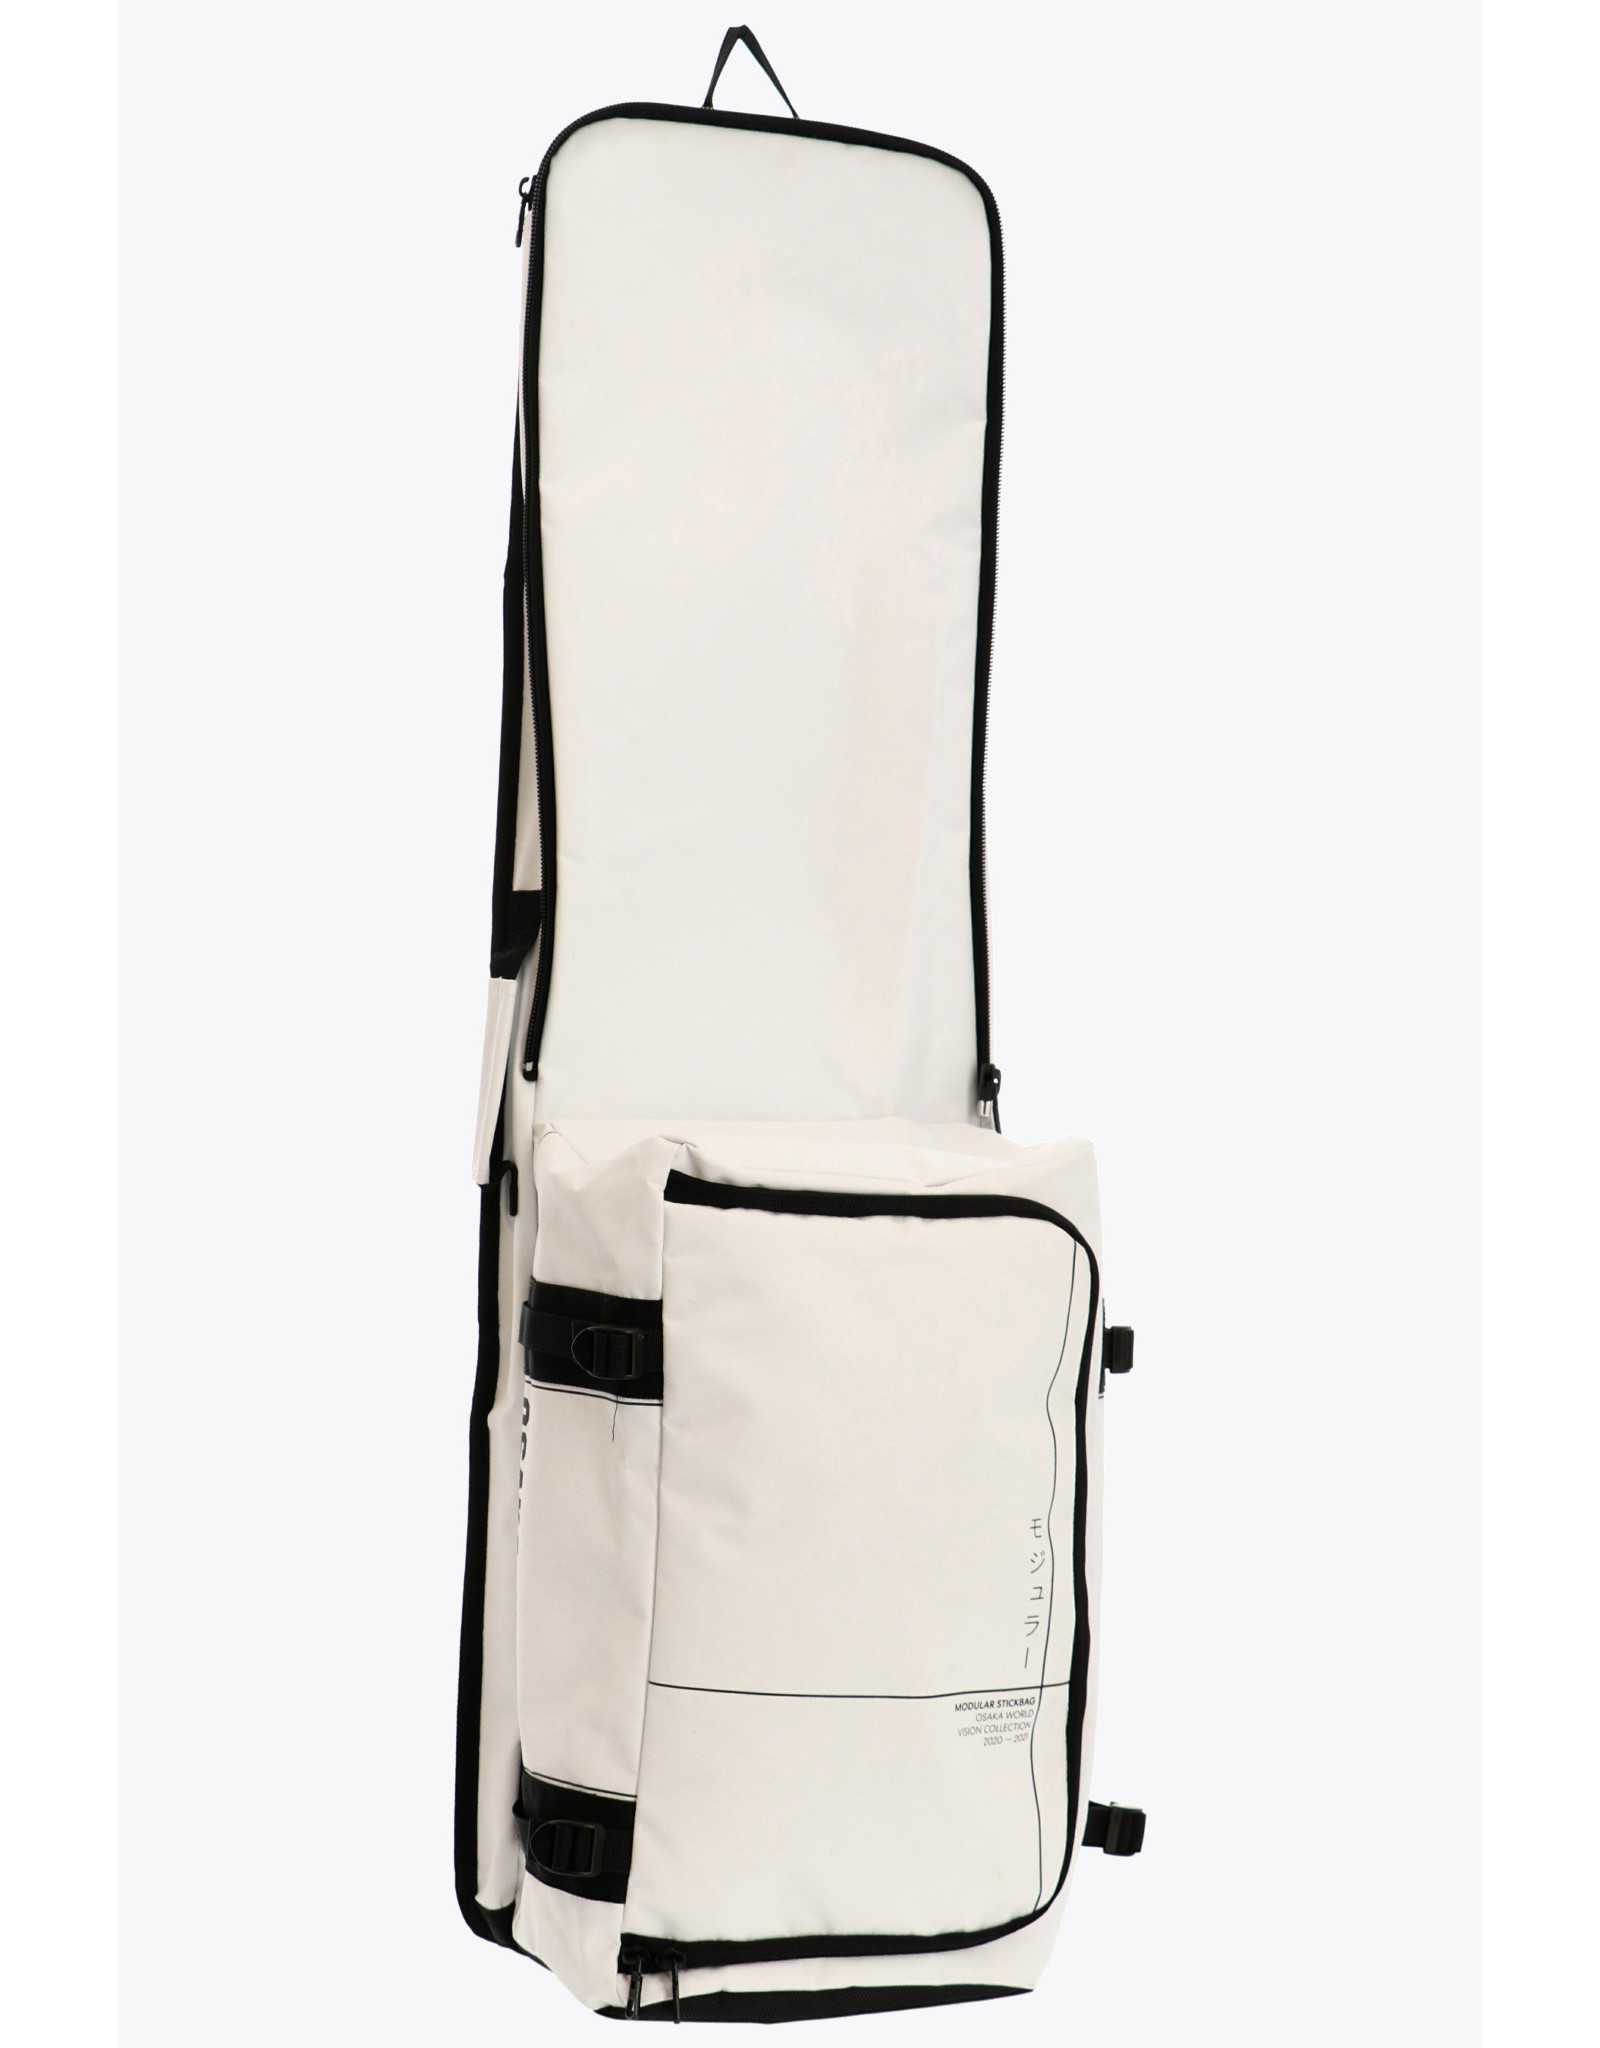 OSAKA OSAKA PRO TOUR STICKBAG MODULAR XL 20-21 WHITE